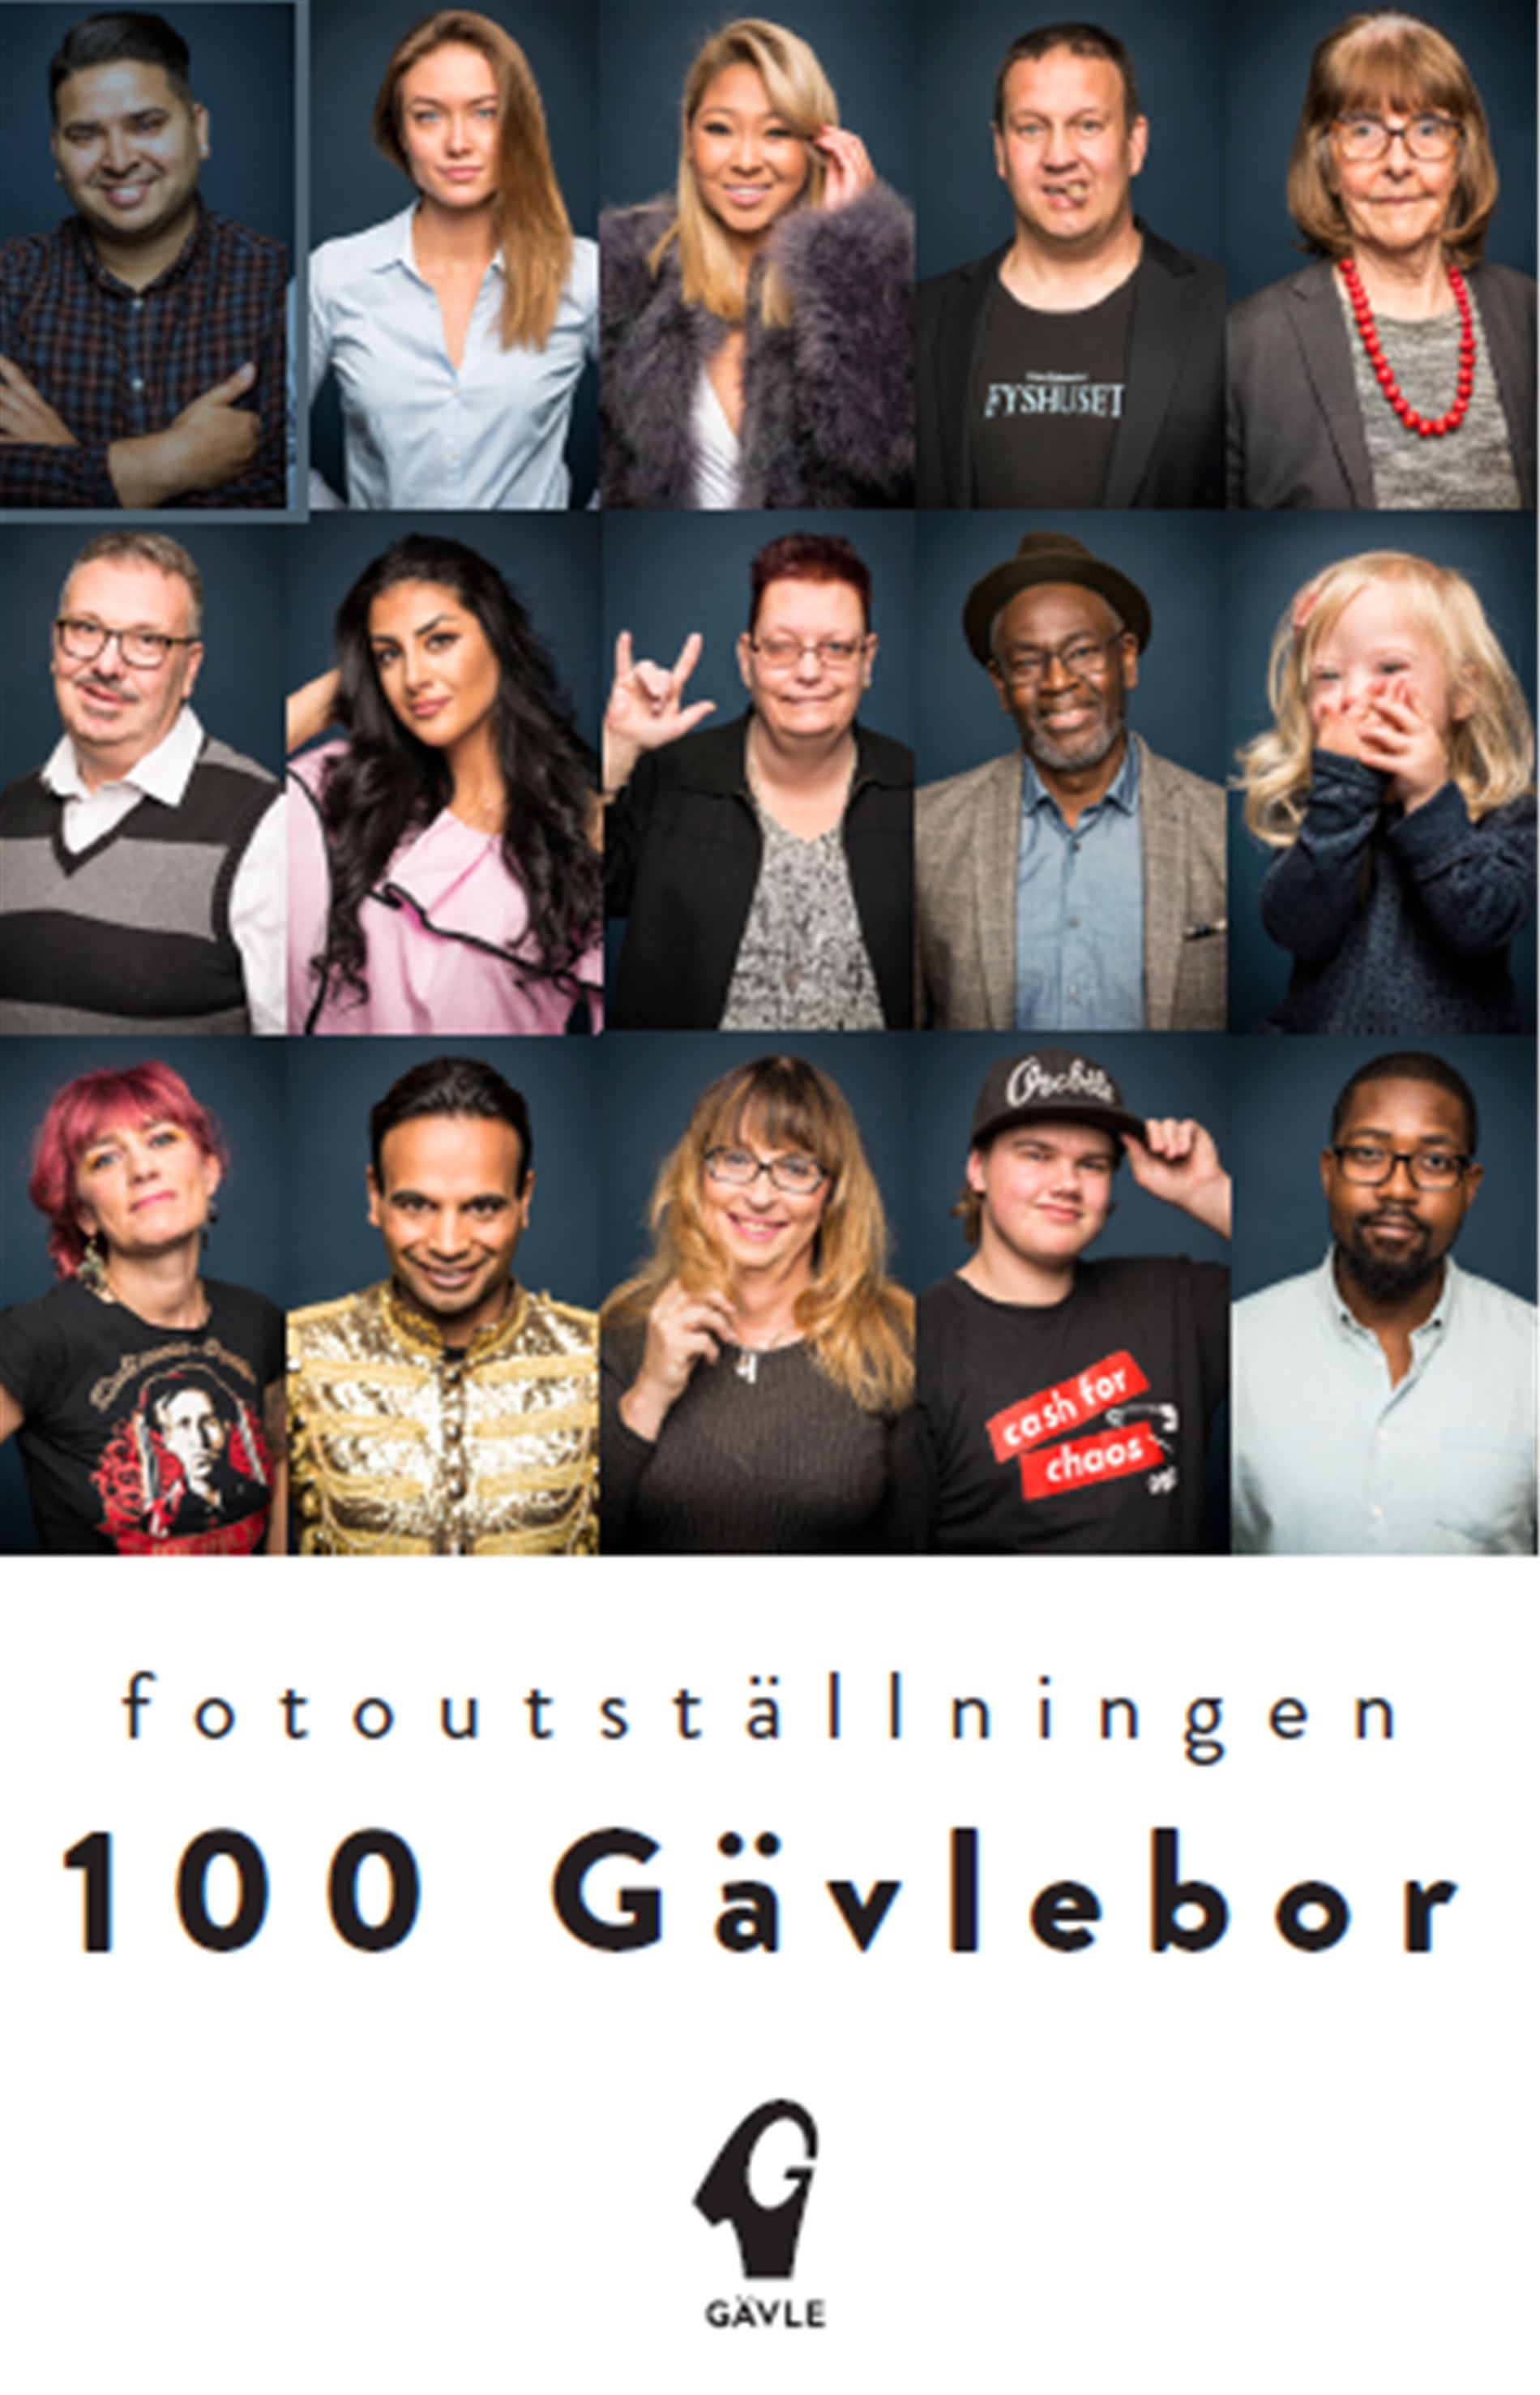 100 Inhabitants of Gävle image